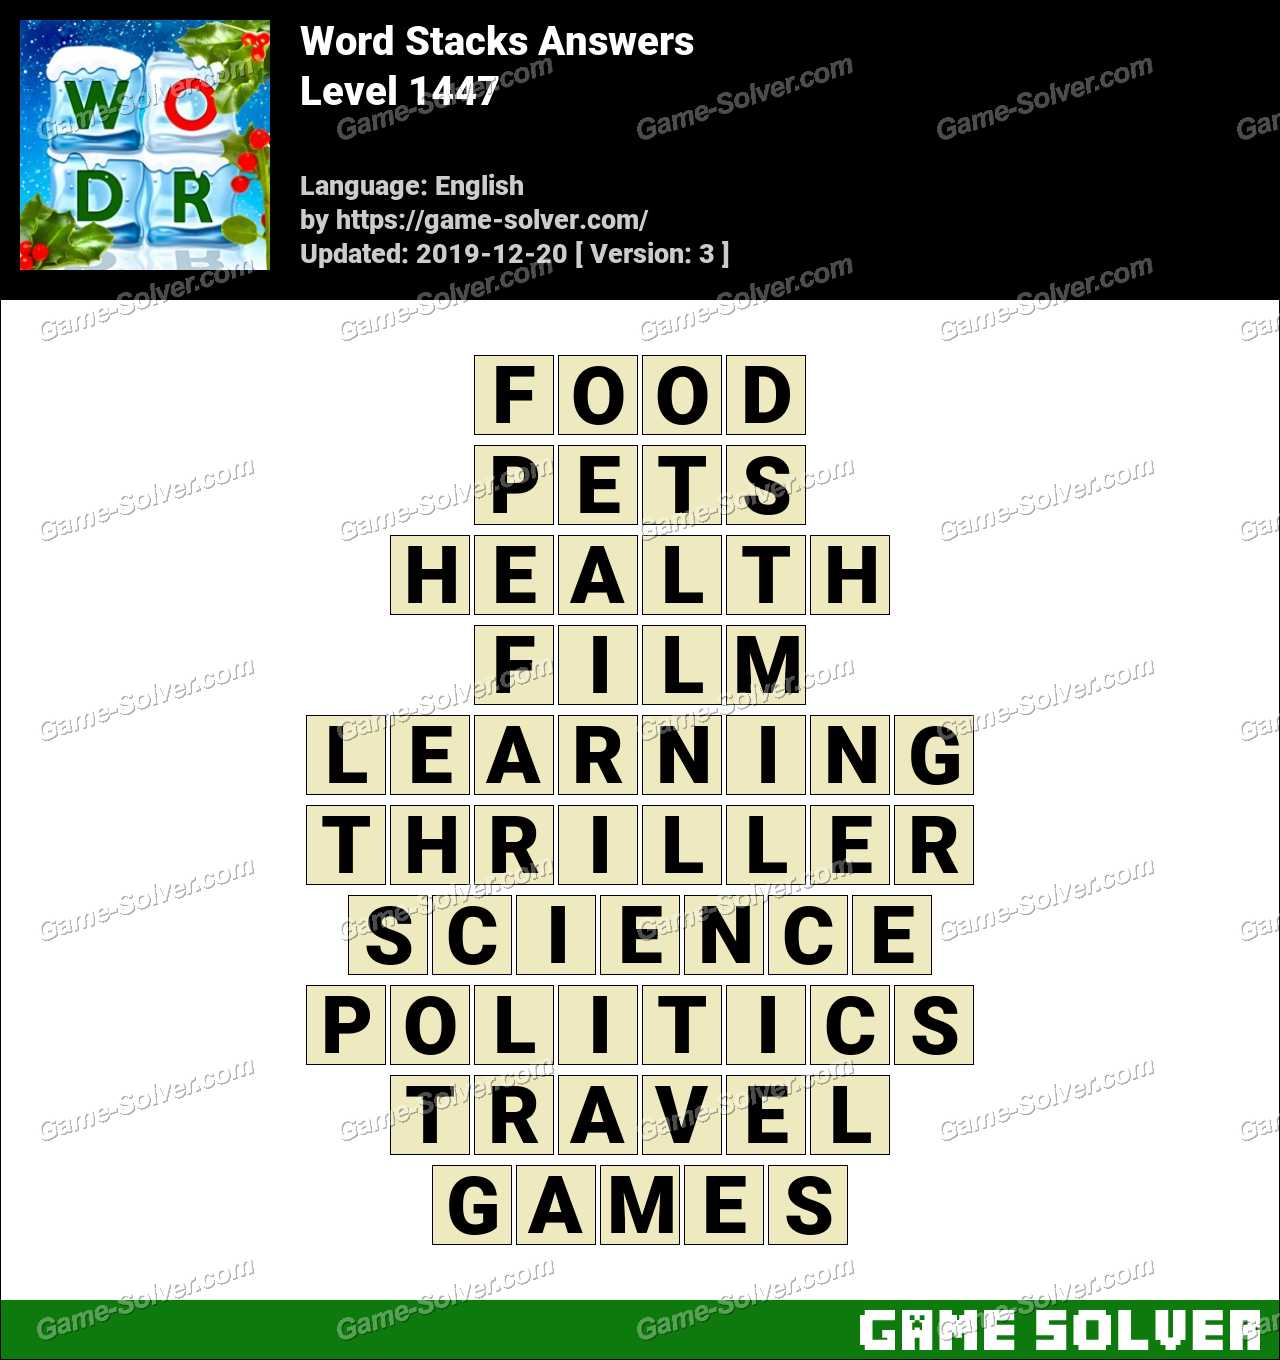 Word Stacks Level 1447 Answers